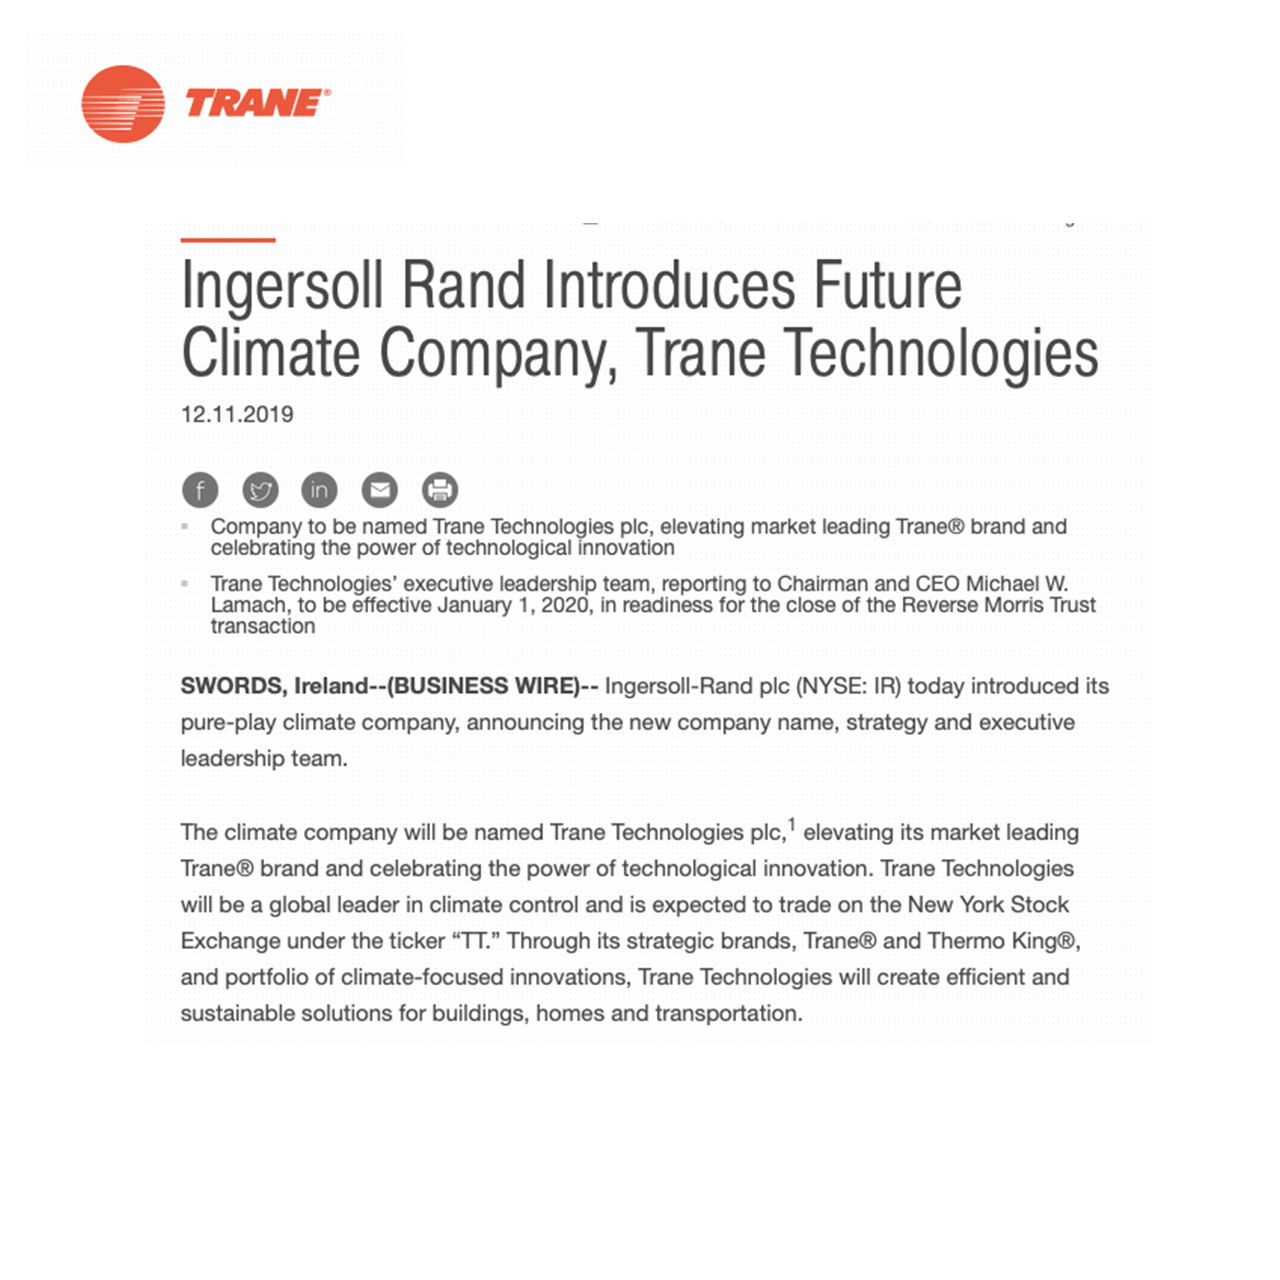 trane-ingersoll-rand-climate-technology-allergy-standards